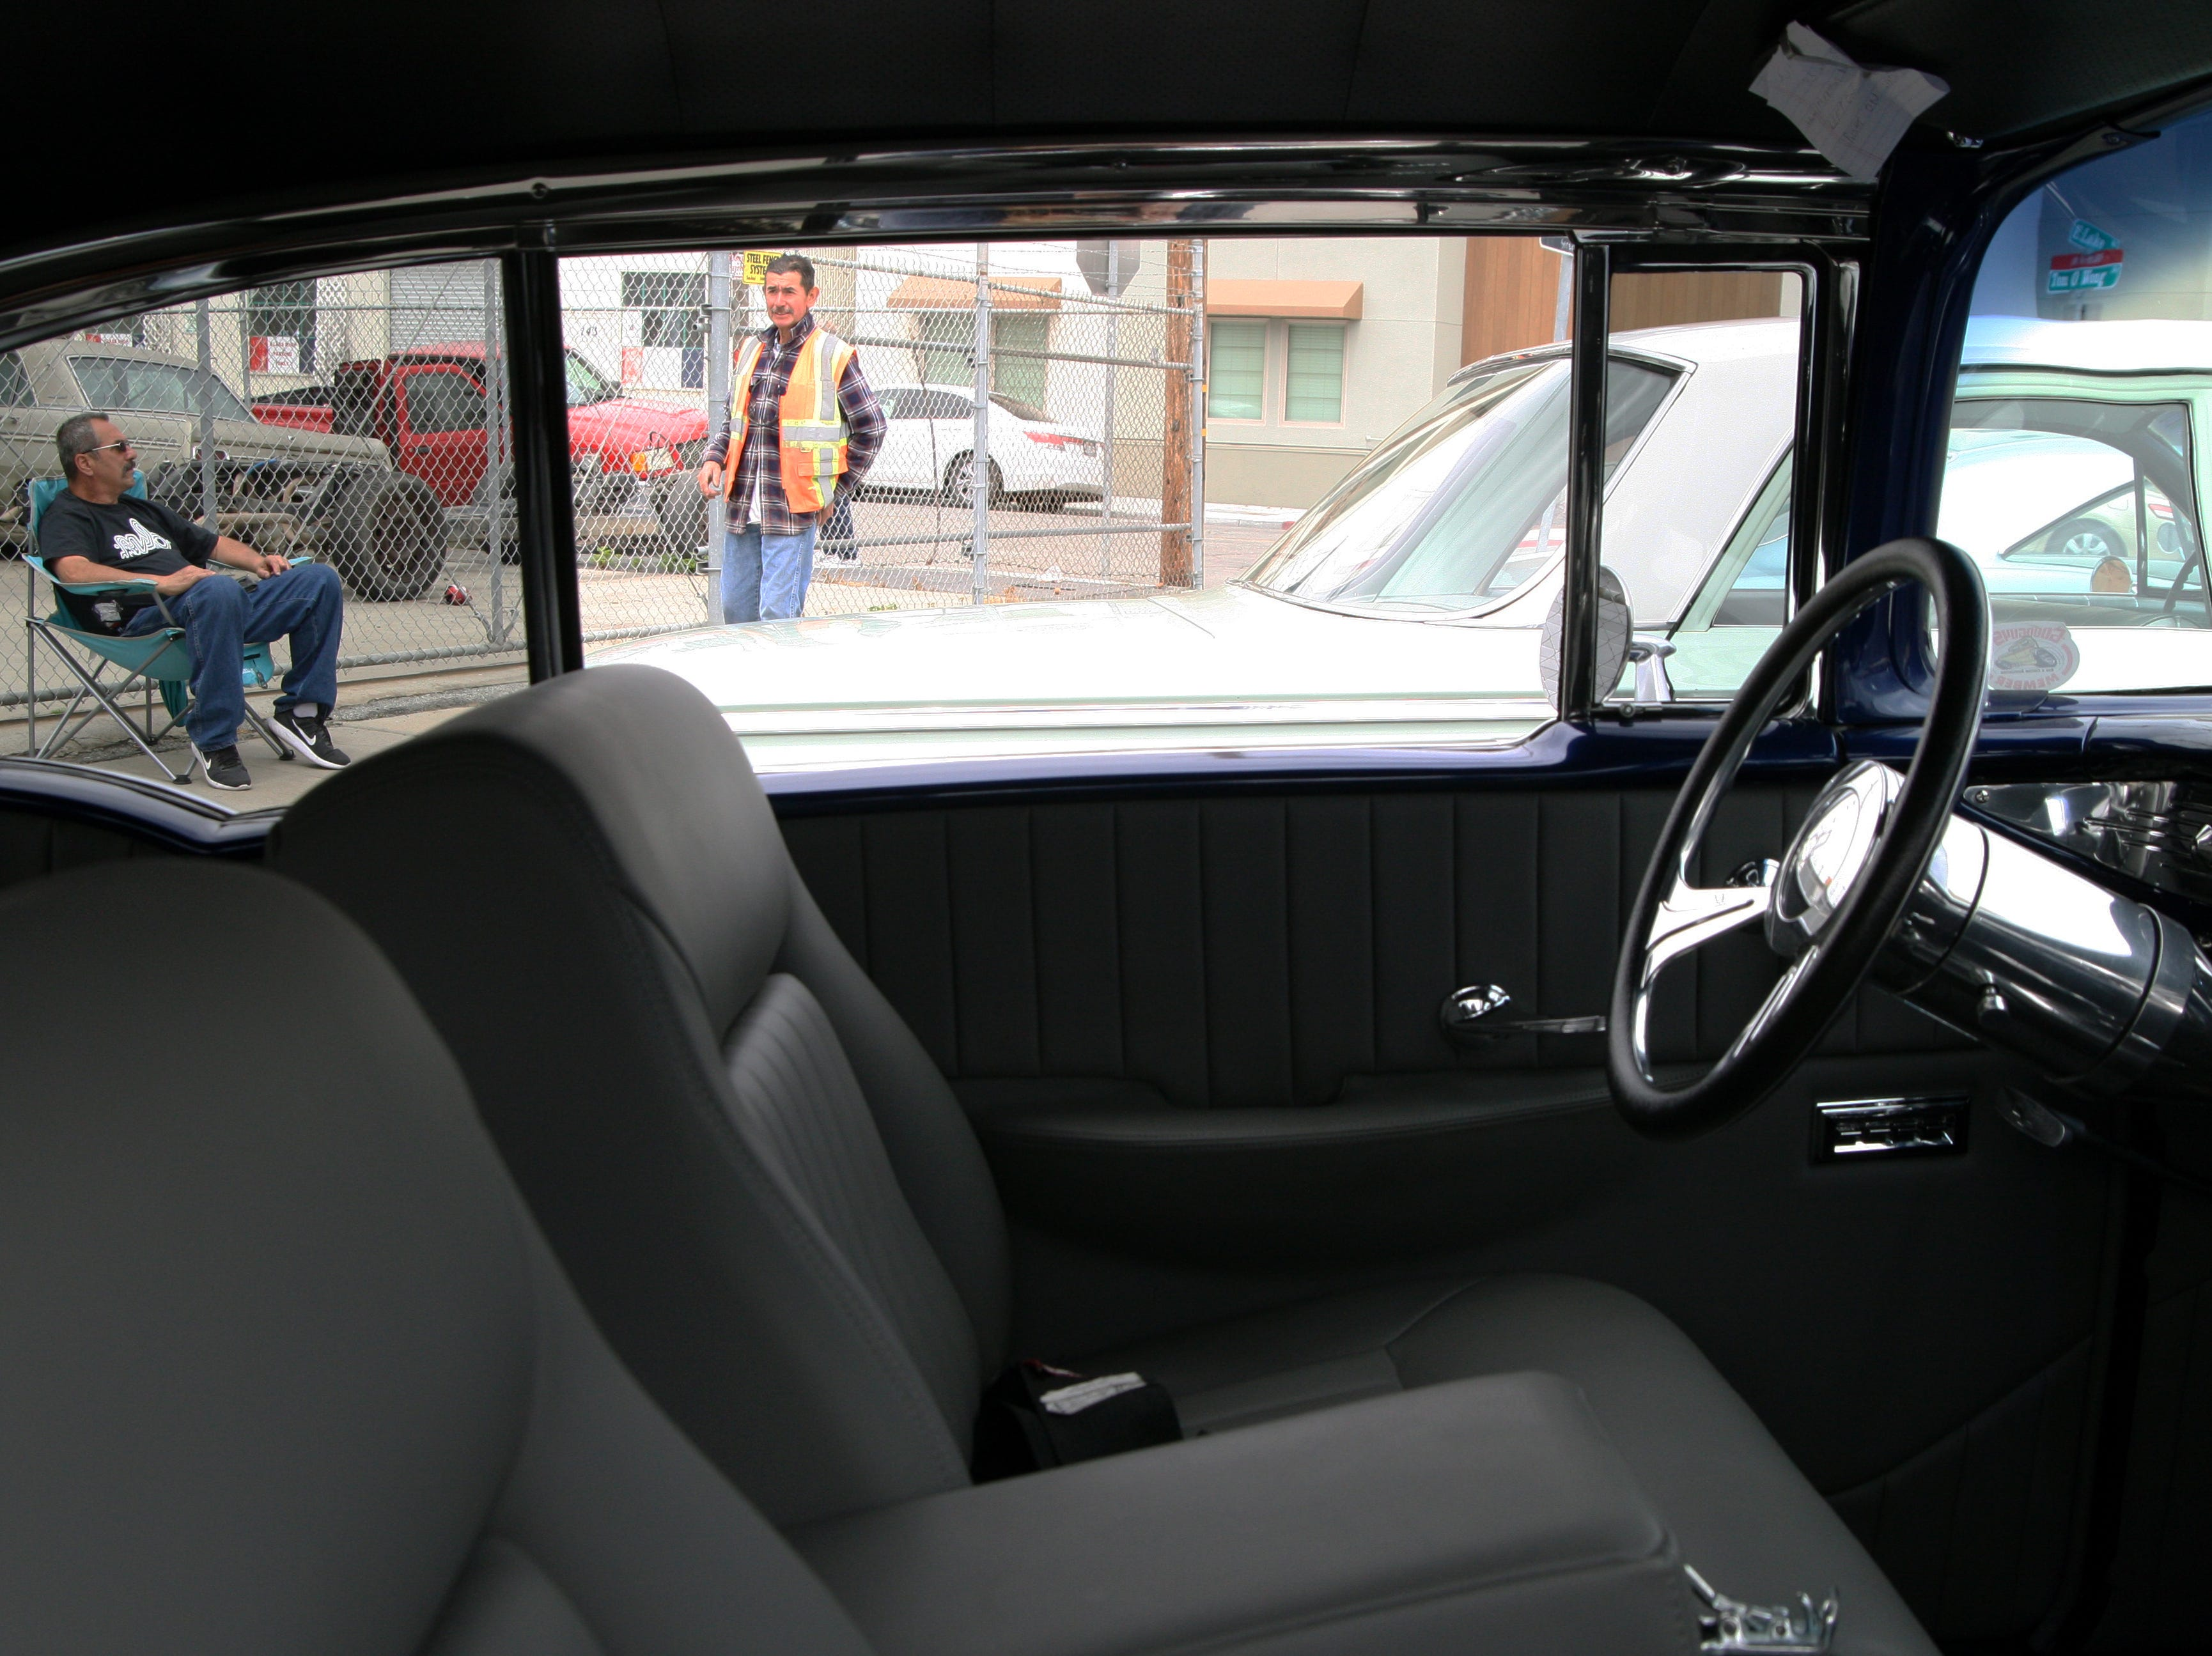 """Richard Barba talks with another classic car enthusiast. """"It's likea breath of fresh air when you drive these old cars,"""" he said. April 27, 2019."""